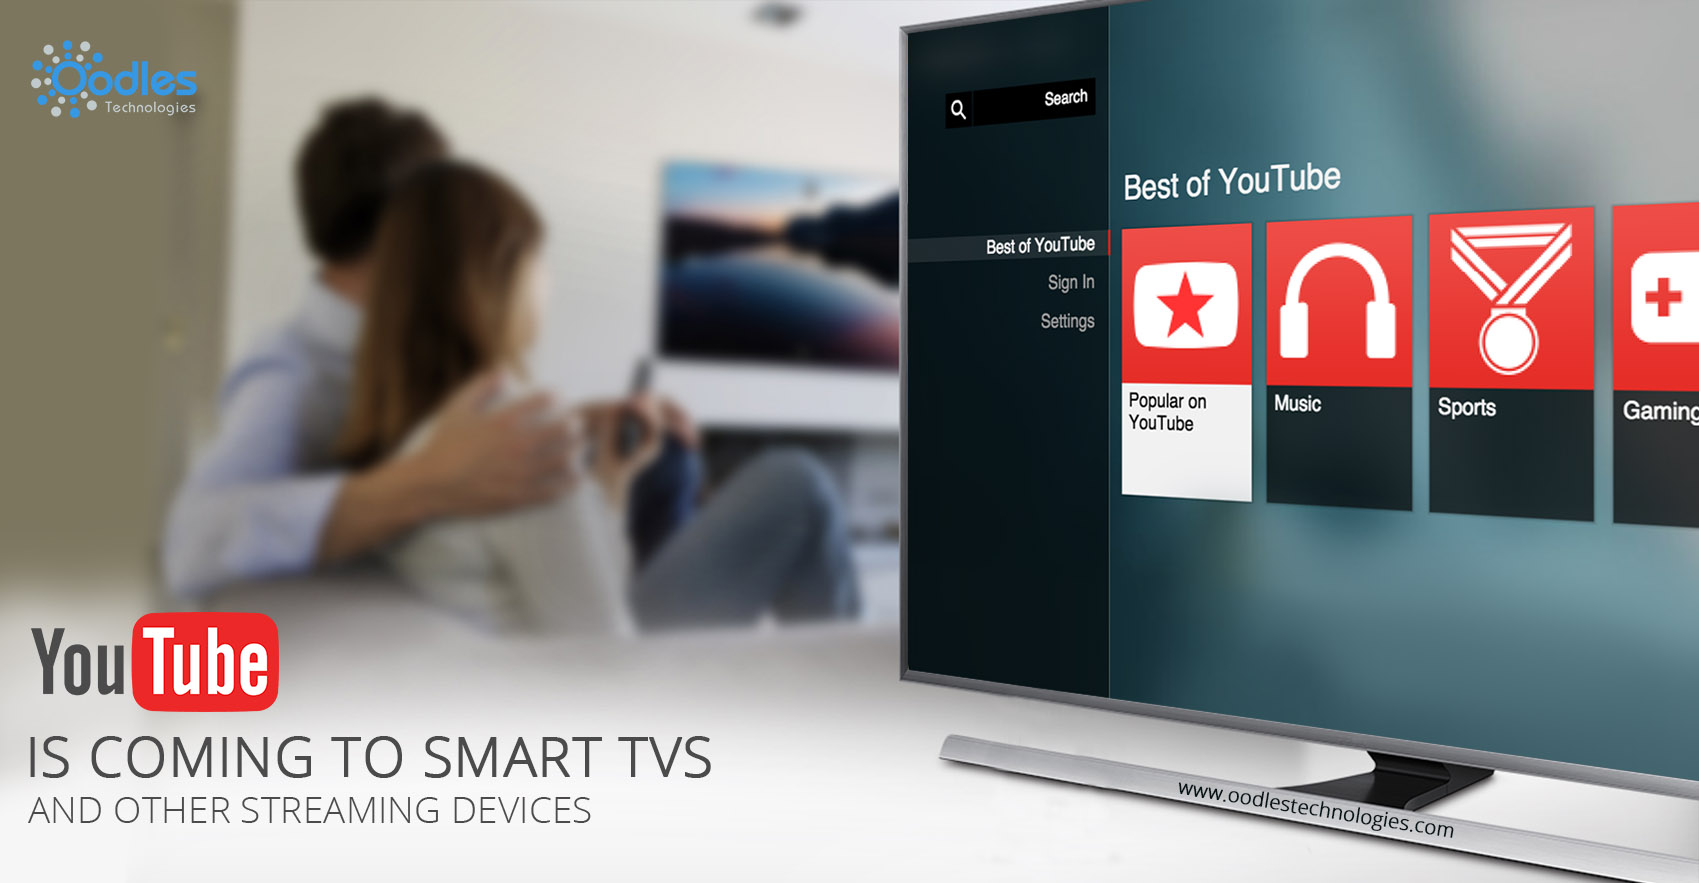 YouTube Is Coming To Smart TVs And Other Streaming Devices